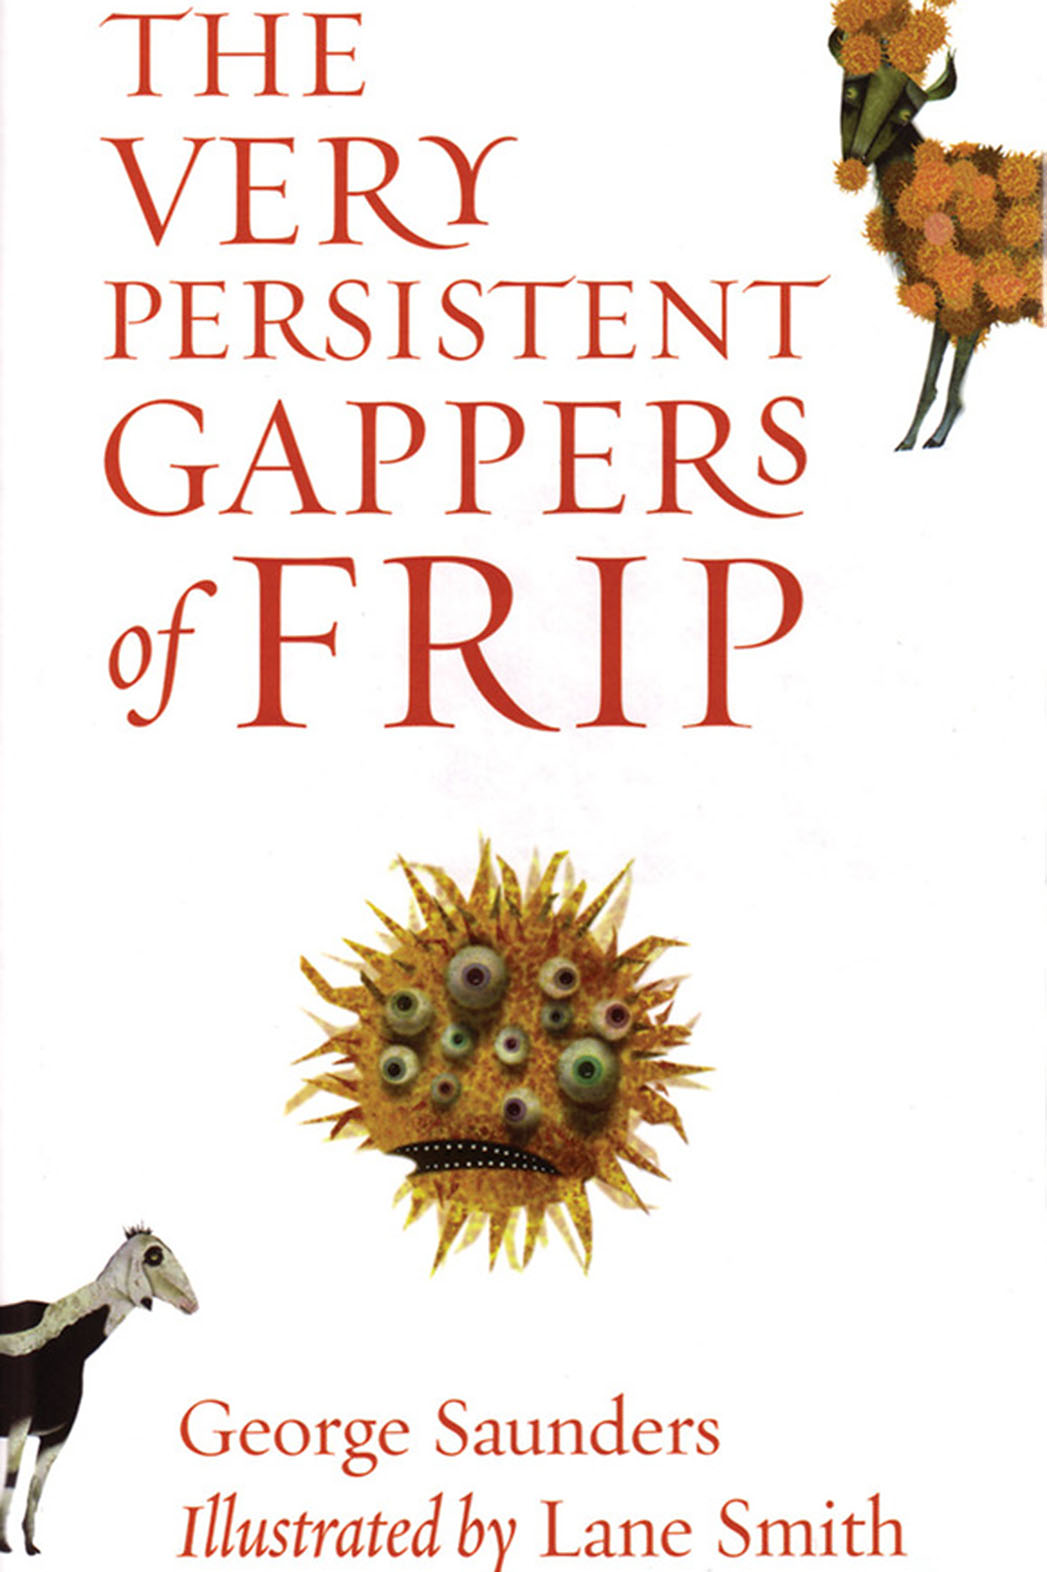 The Very Persistent Gappers of Frip Cover - P 2015